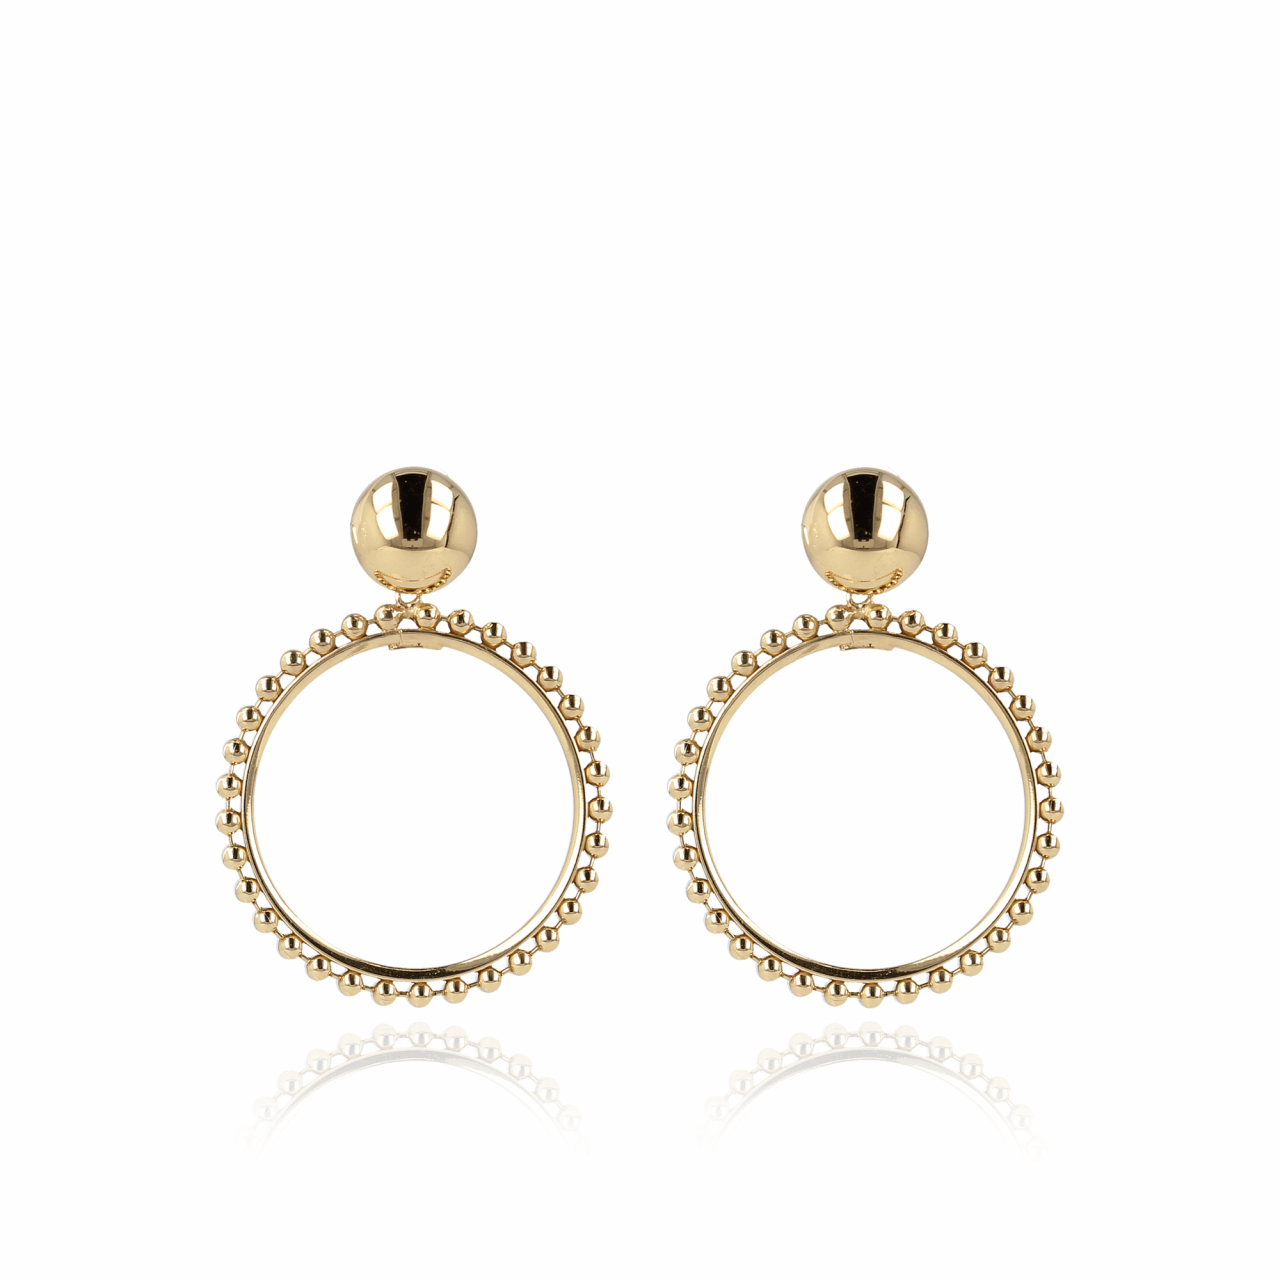 Golden circle ball chain earrings